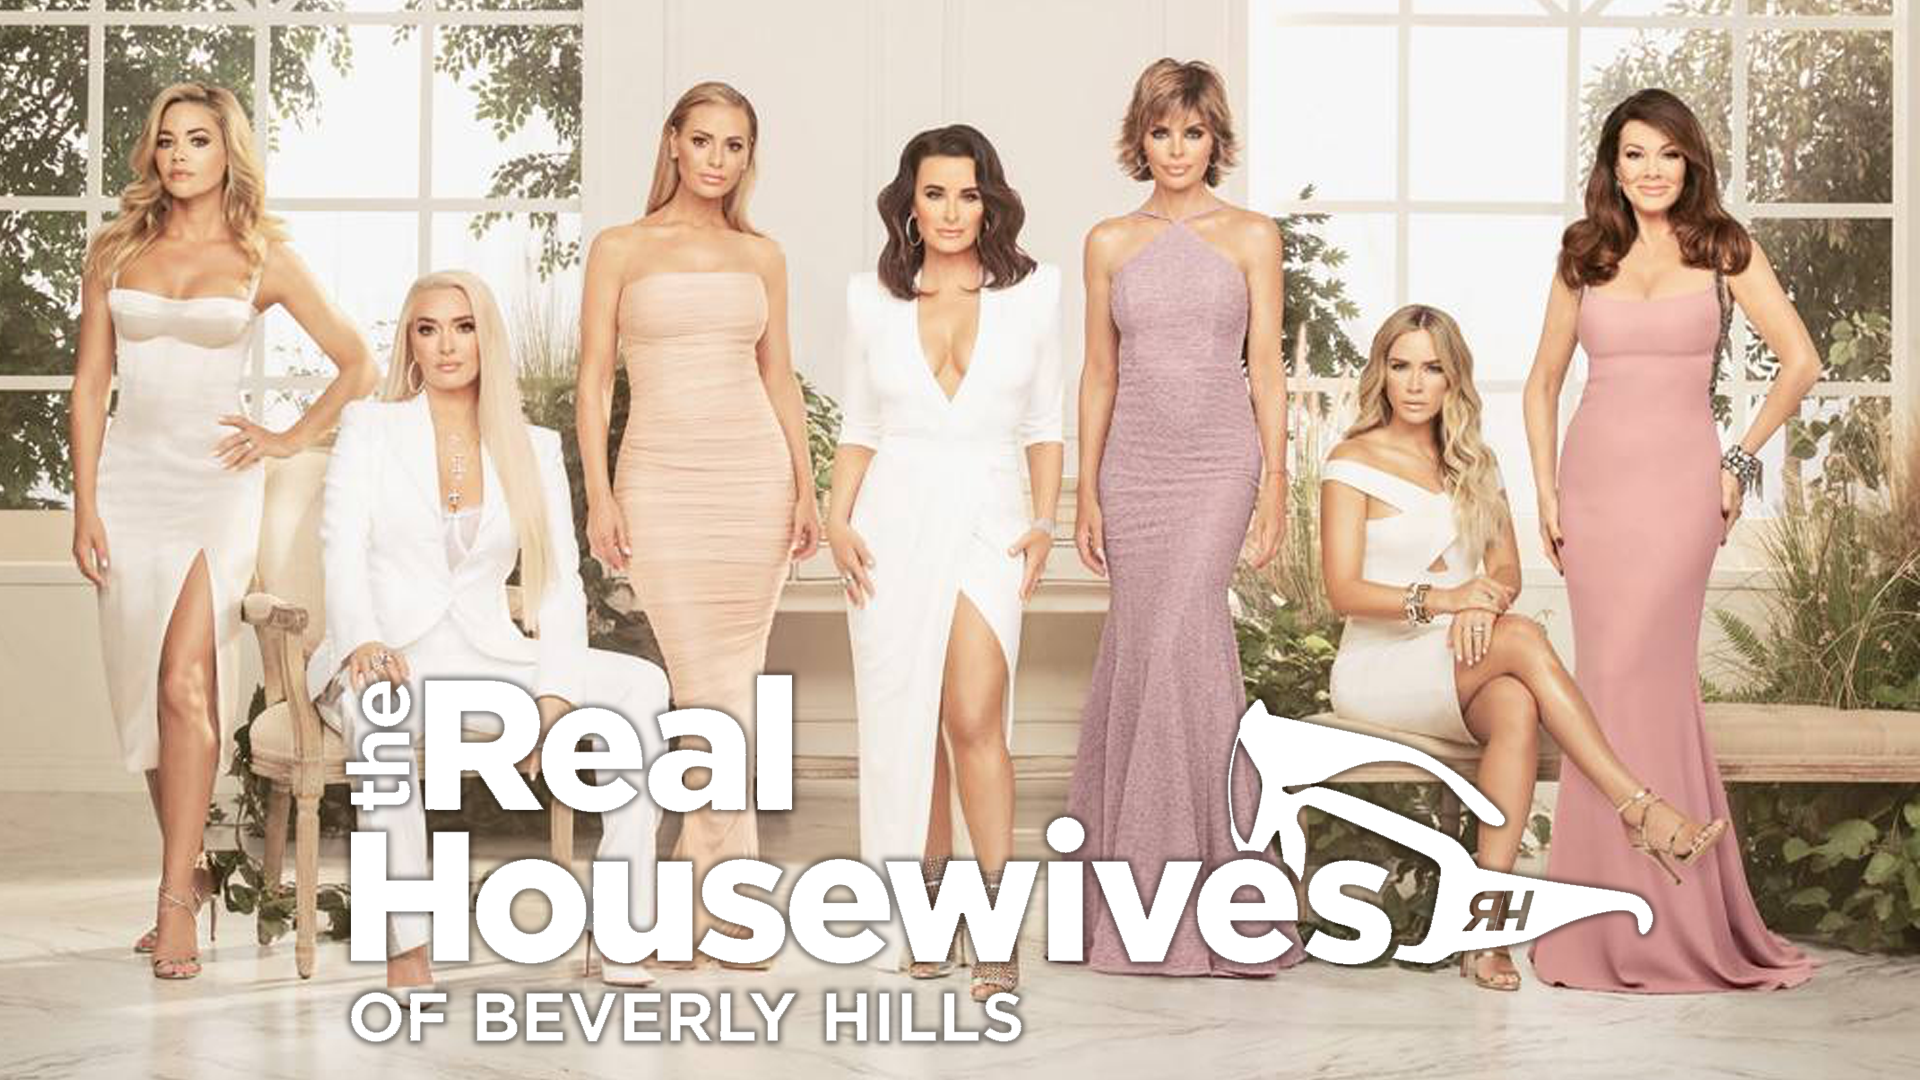 Real Housewives of Beverly Hills Recap - Season 9, Episode 7 screen capture